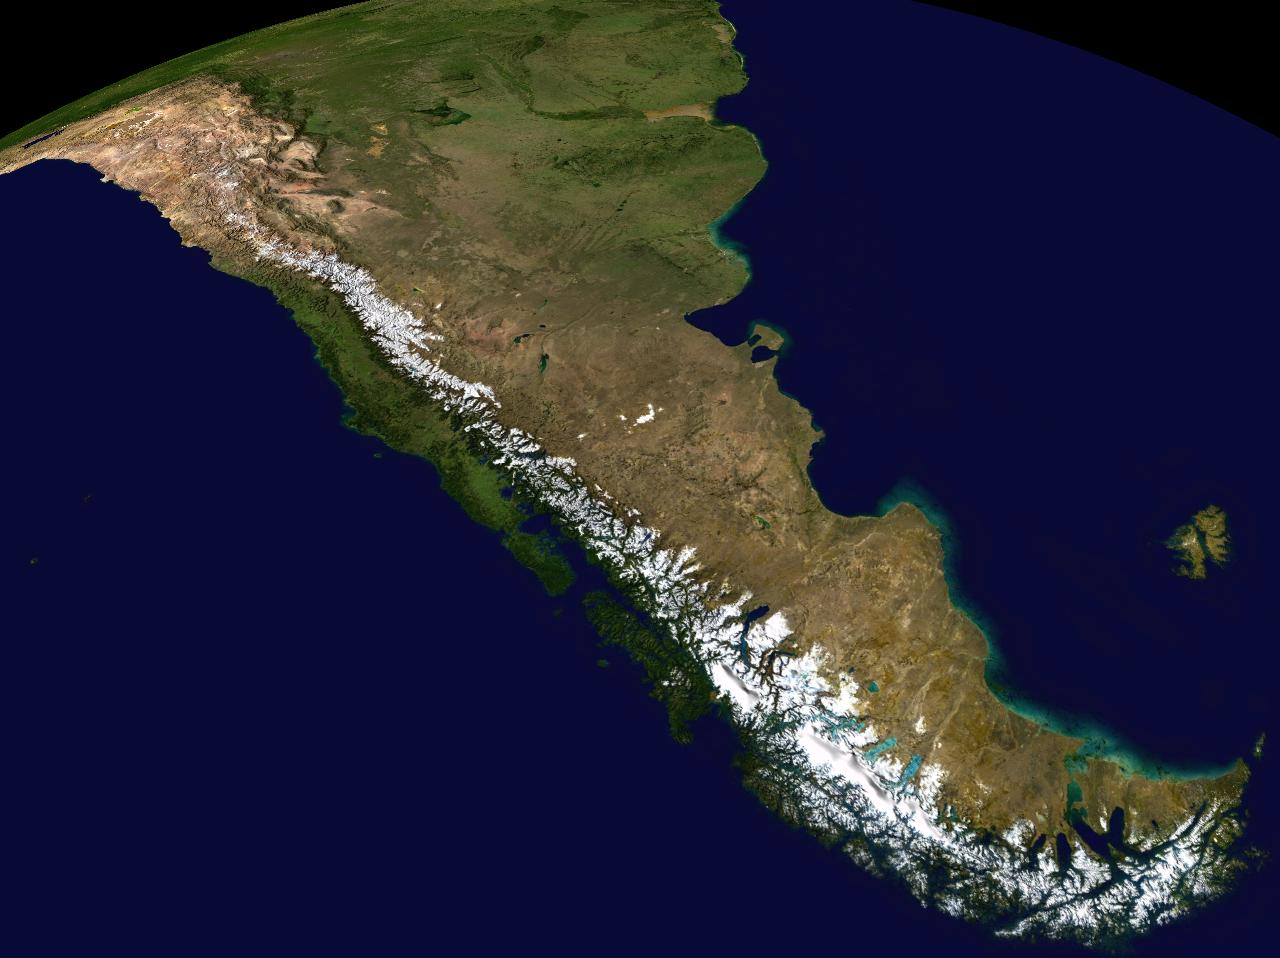 Andes_70.30345W_42.99203S.jpg